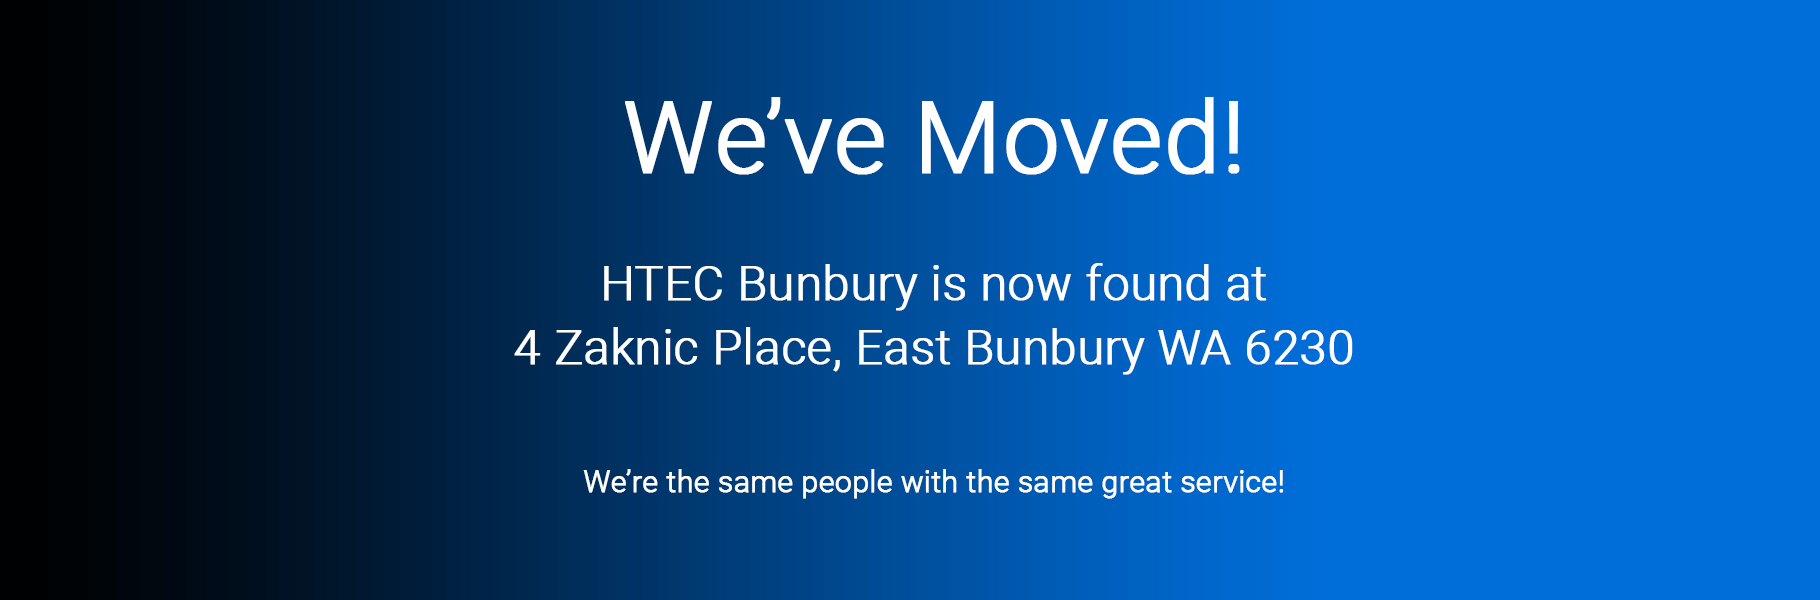 We've Moved! HTEC Bunbury is now found at 4 Zaknic Place, East Bunbury WA 6230. Same people with the same great service!